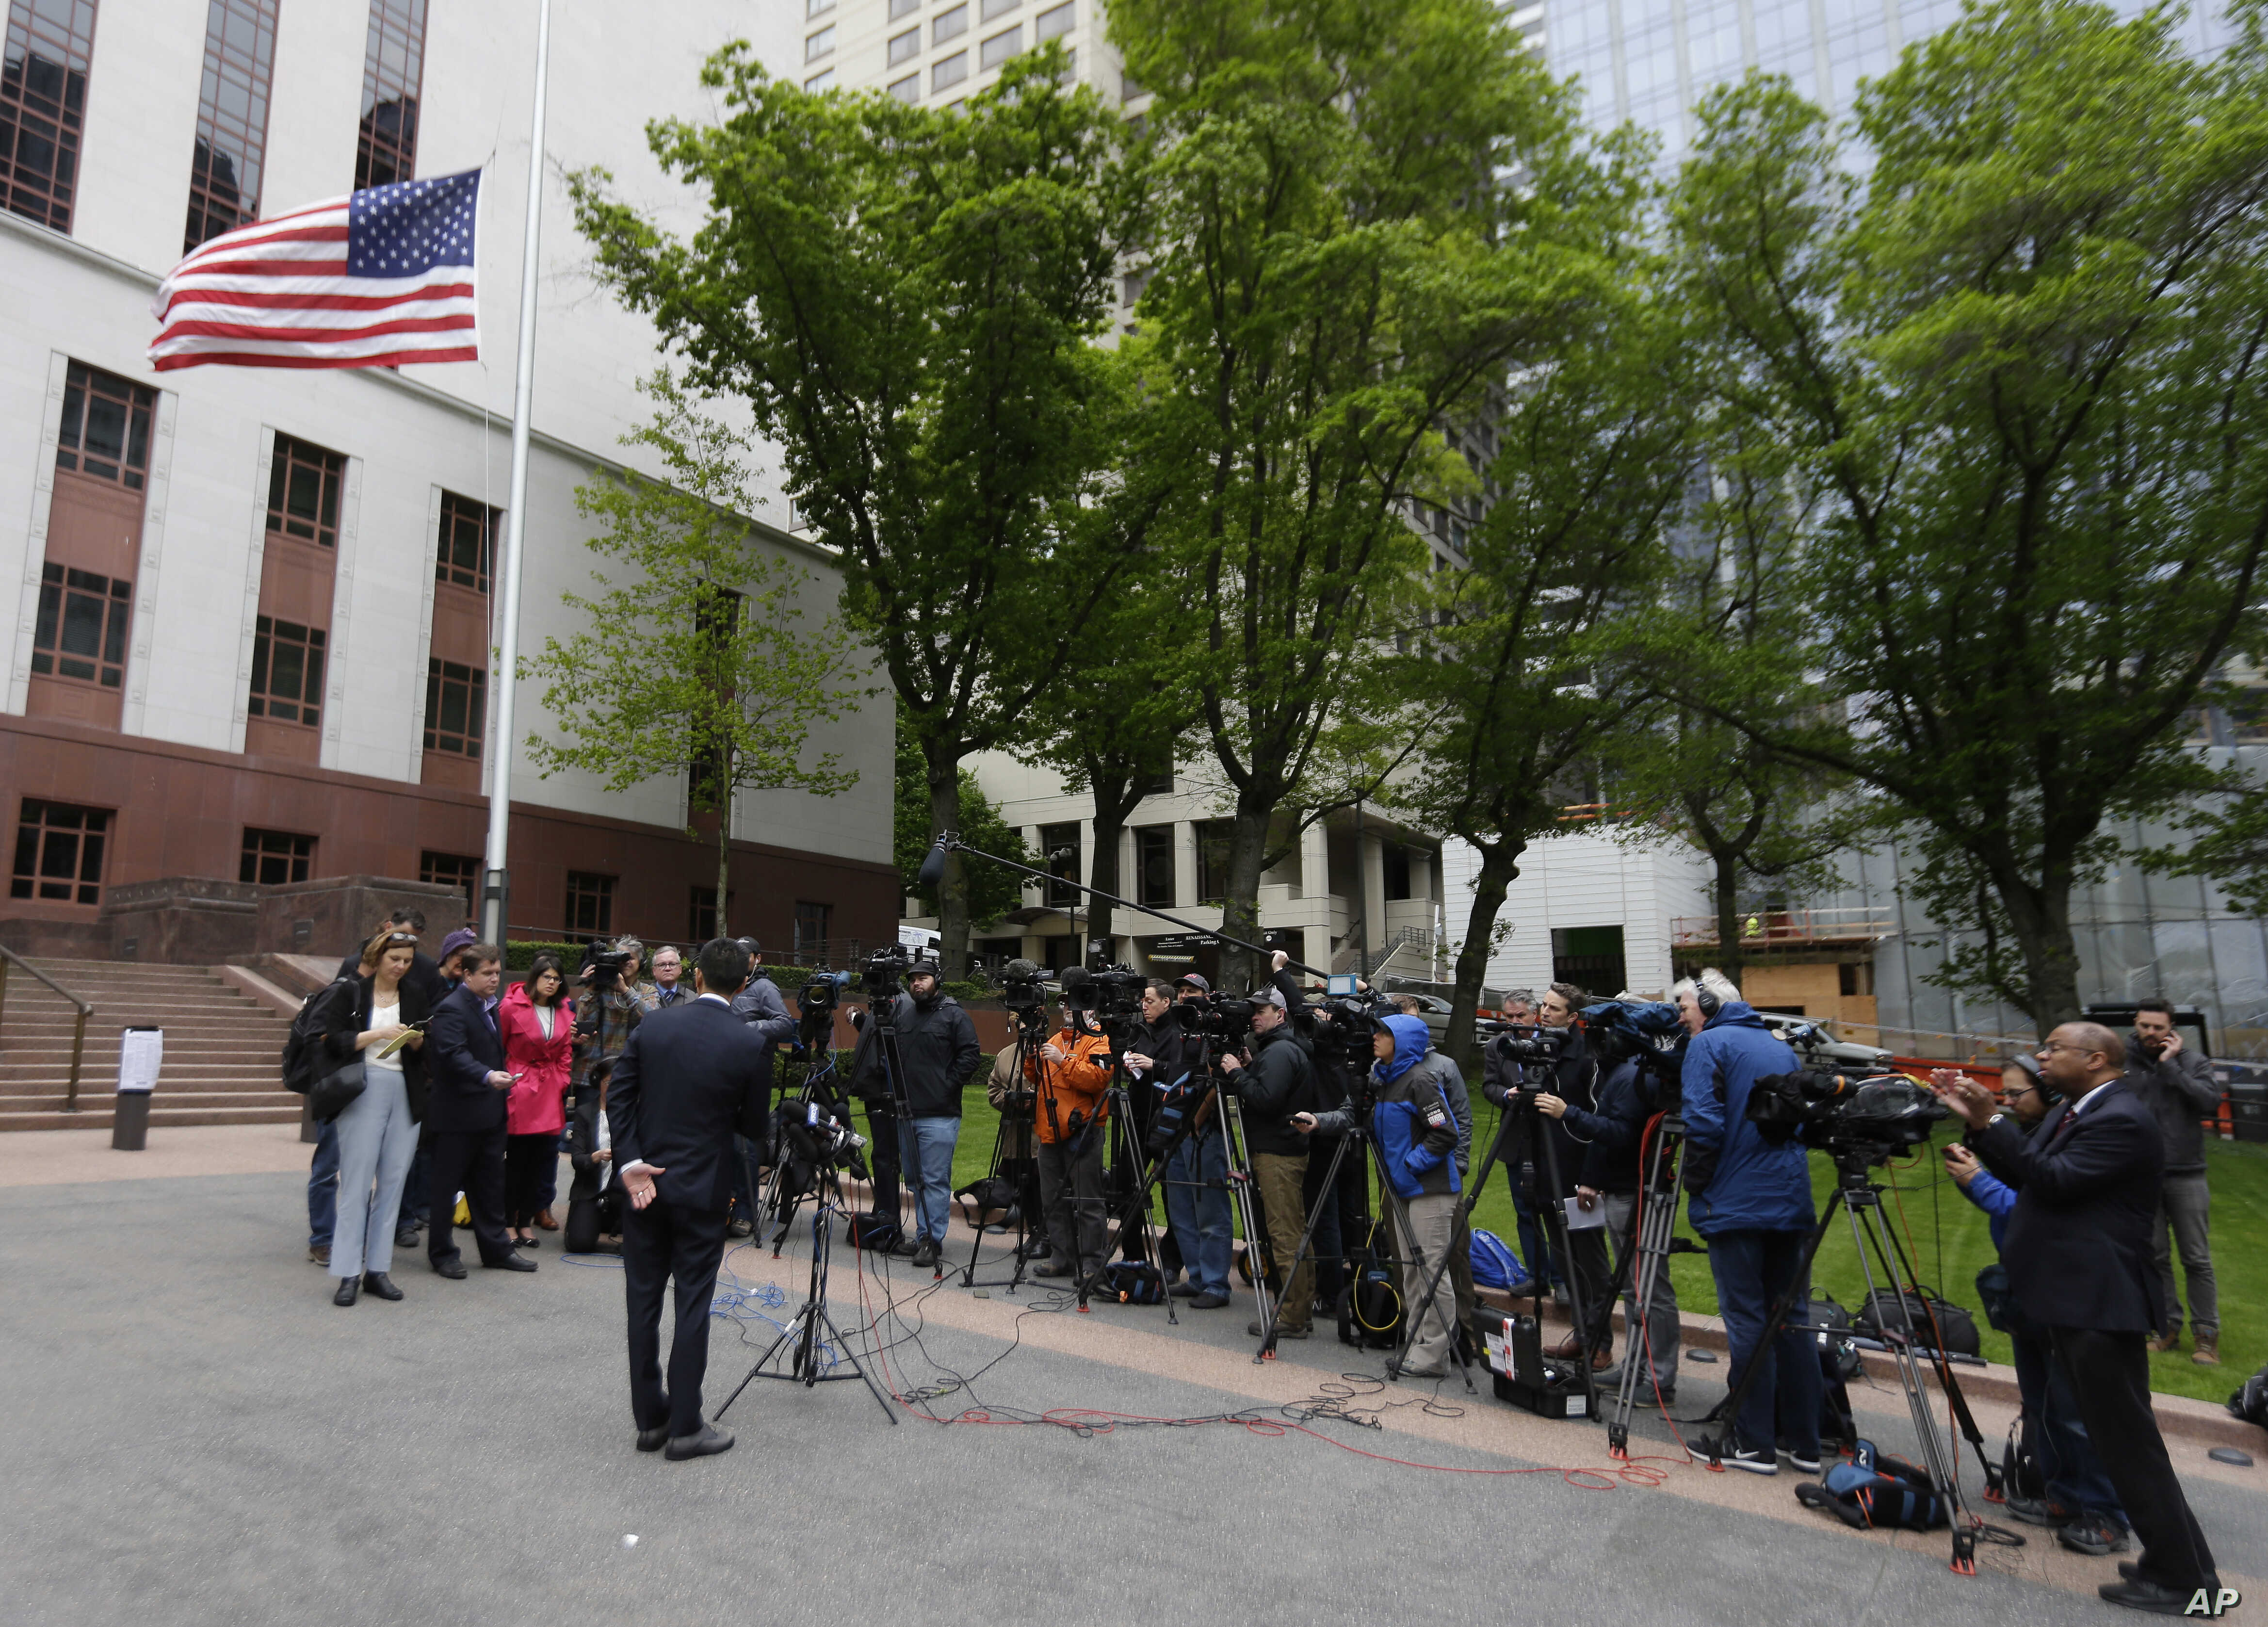 Hawaii Attorney General Doug Chin (at left, with back to camera) talks to reporters outside a federal courthouse in Seattle, May 15, 2017. A three-judge panel of the 9th U.S. Circuit Court of Appeals heard arguments Monday in Seattle over Hawaii's la...